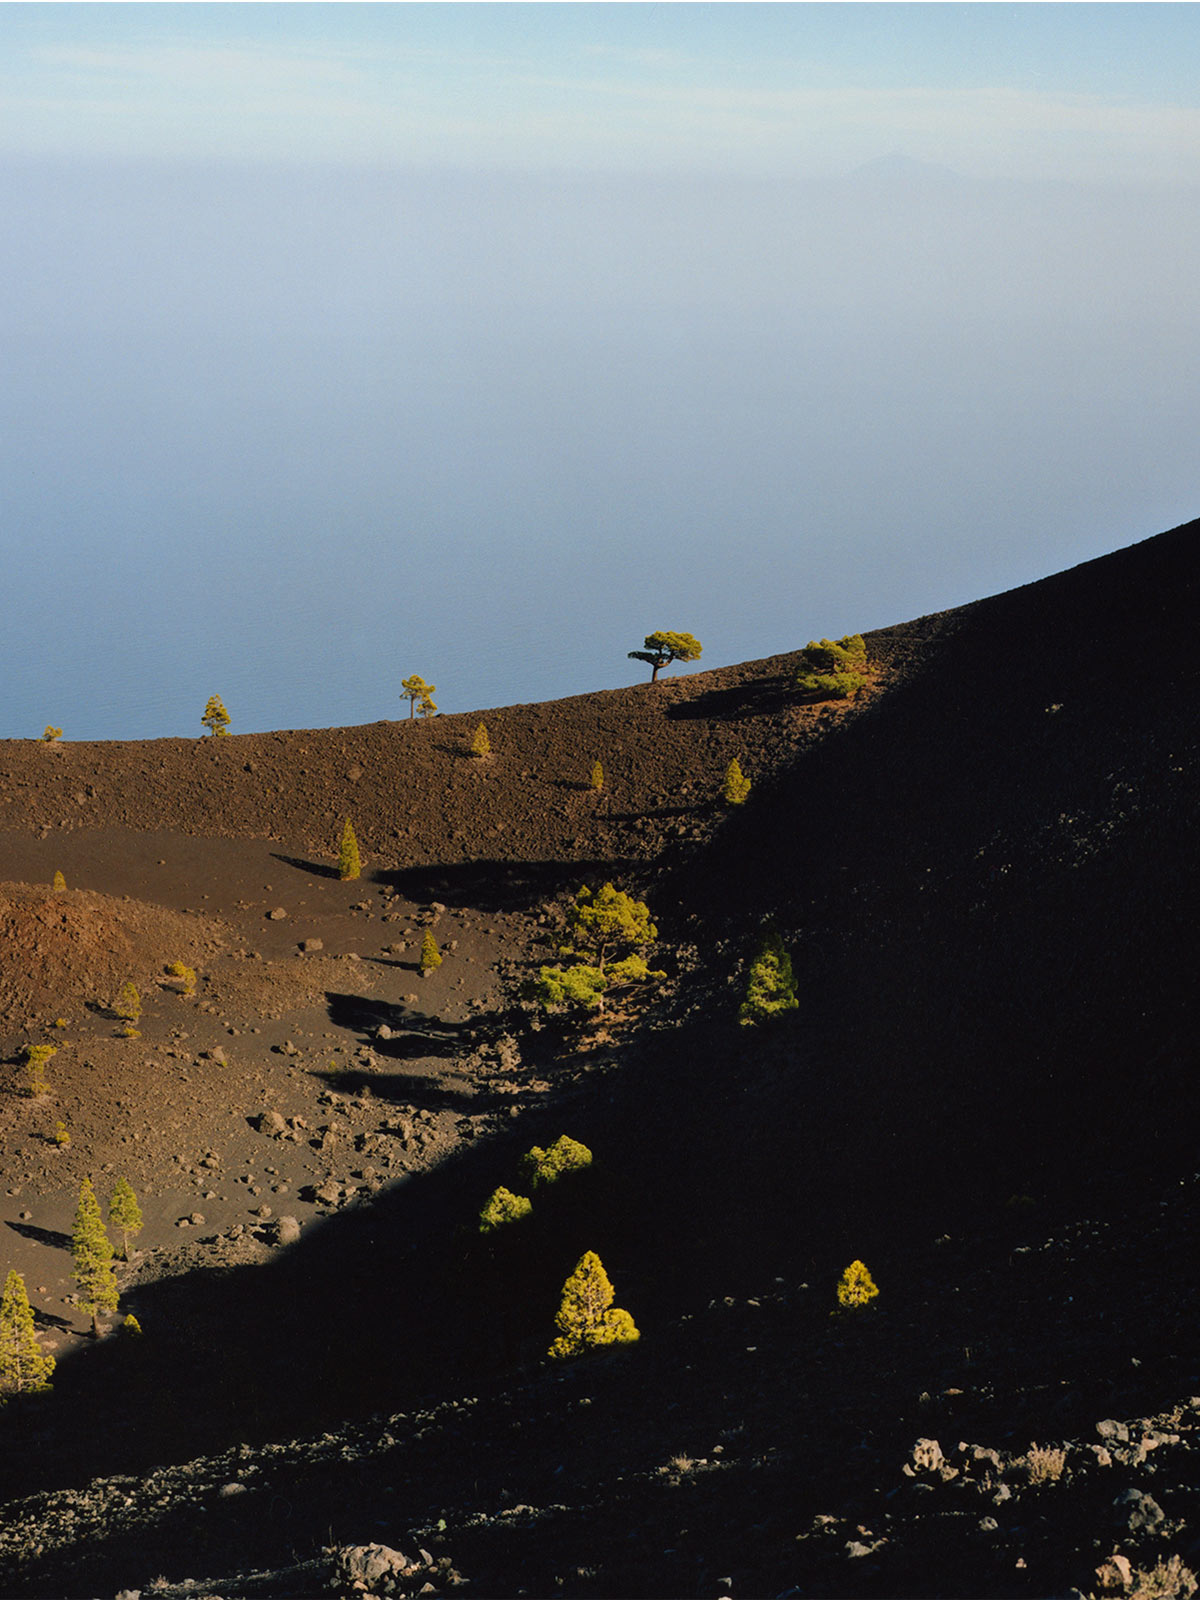 Discover La Palma, the Canary Islands' ecological marvel